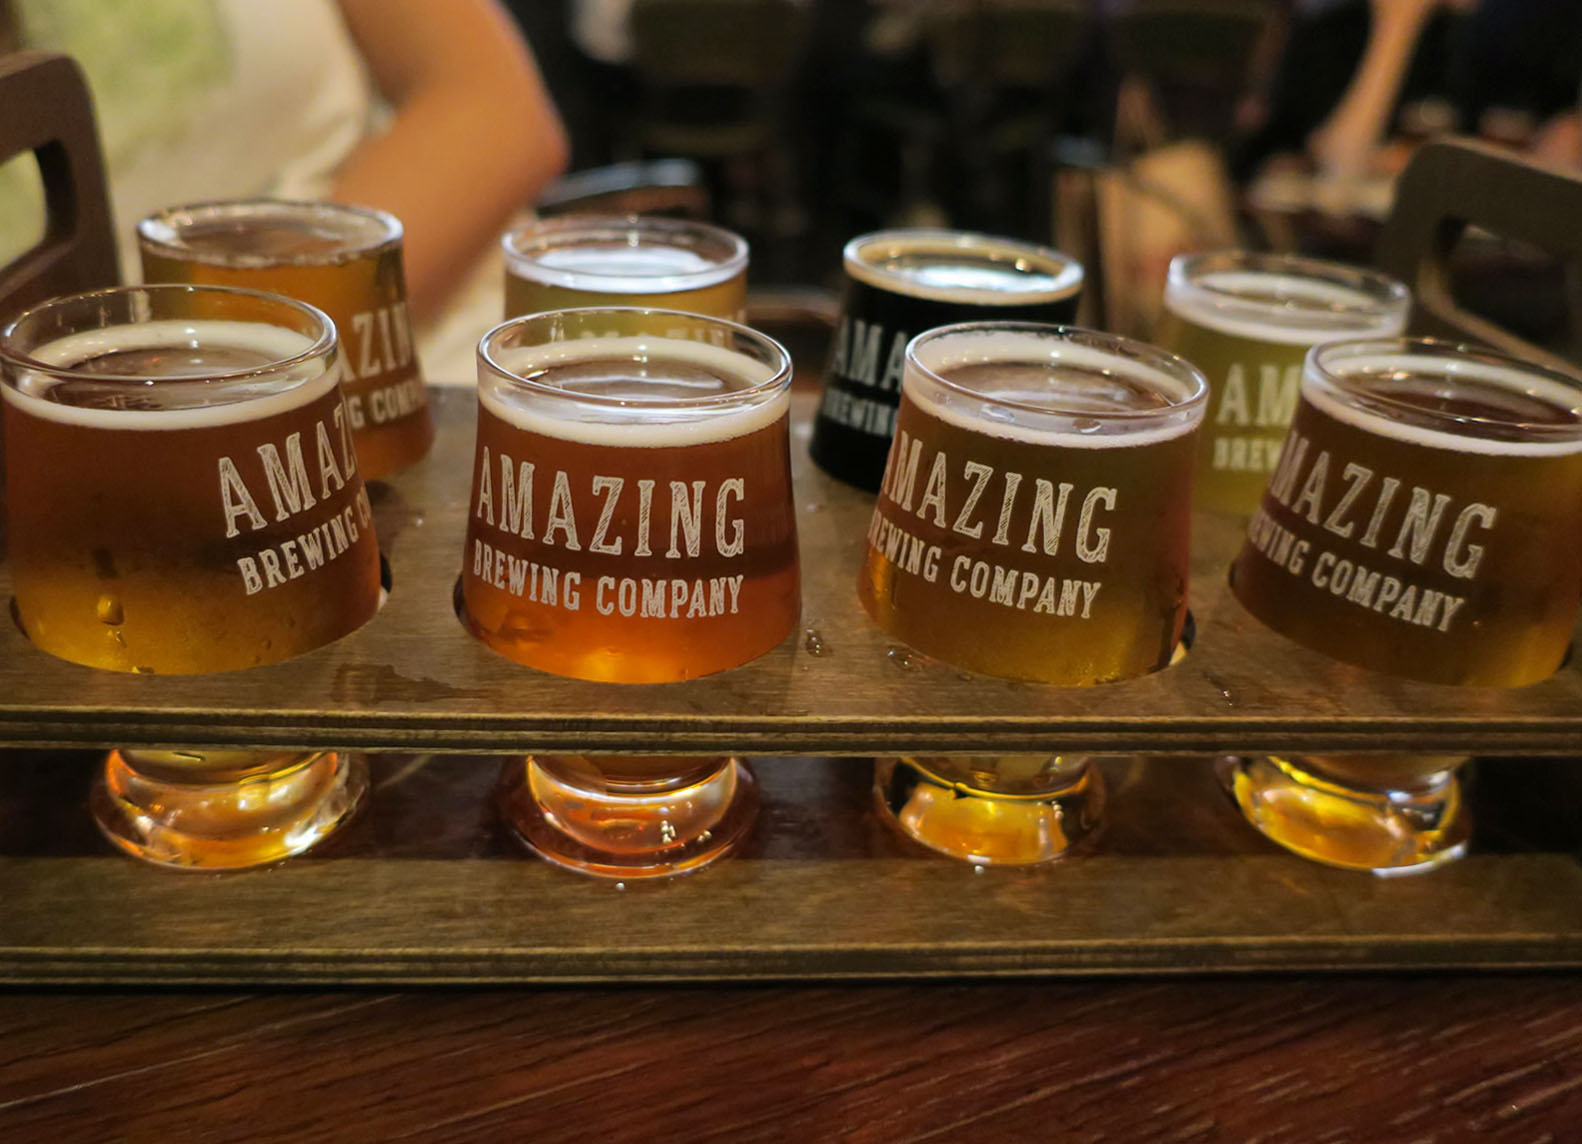 ソウル AMAZING BREWING COMPANY